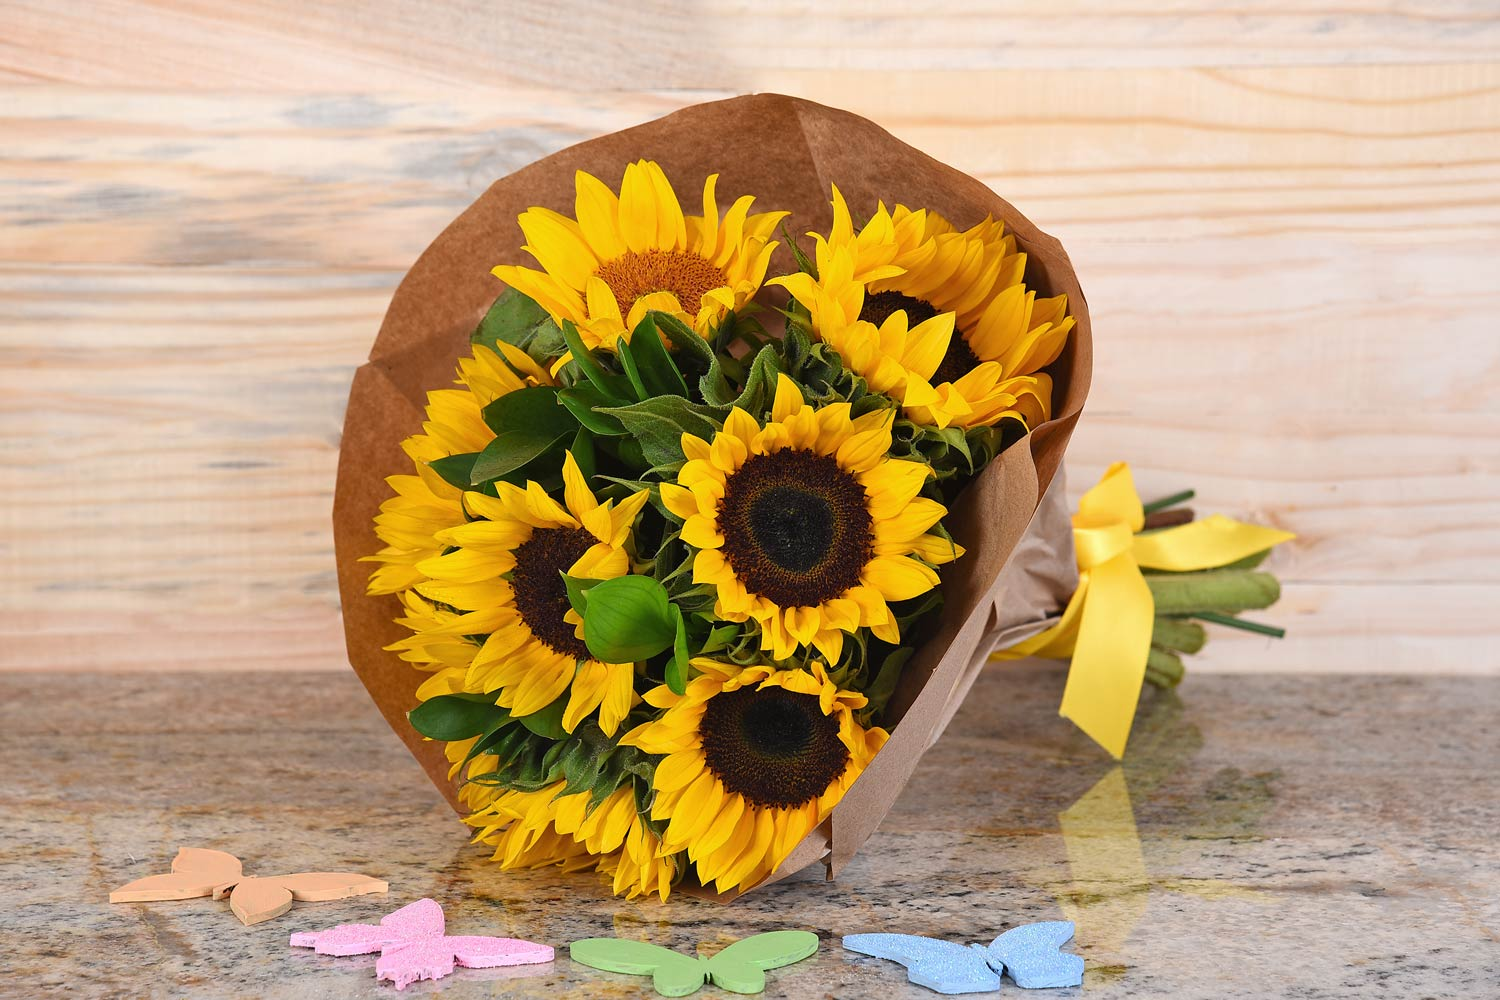 Sunflower-Bouquet-Hamper-World-Florist